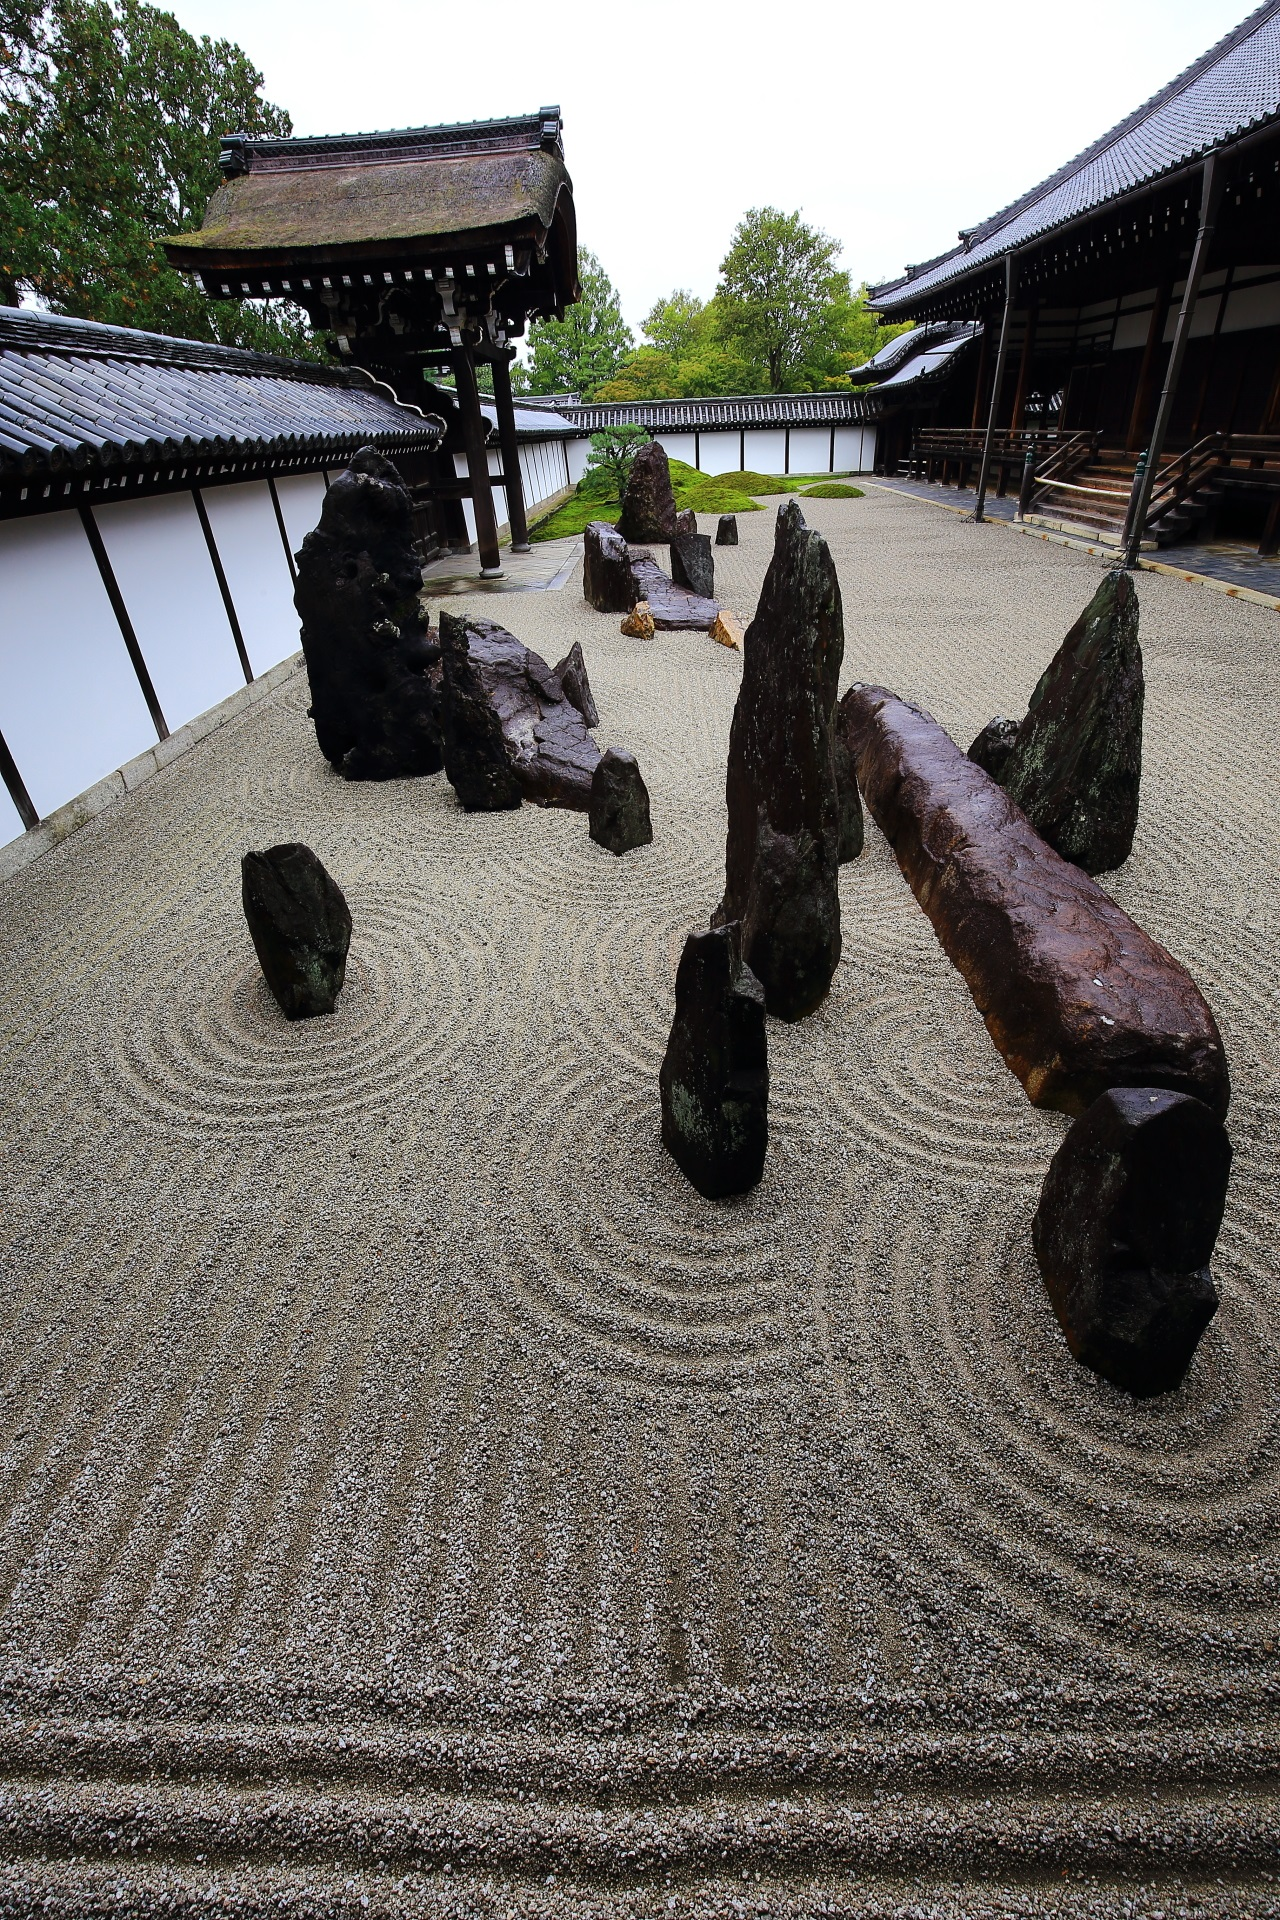 Rock and stone garden in Tofukuji-Temple in Kyoto,Japan